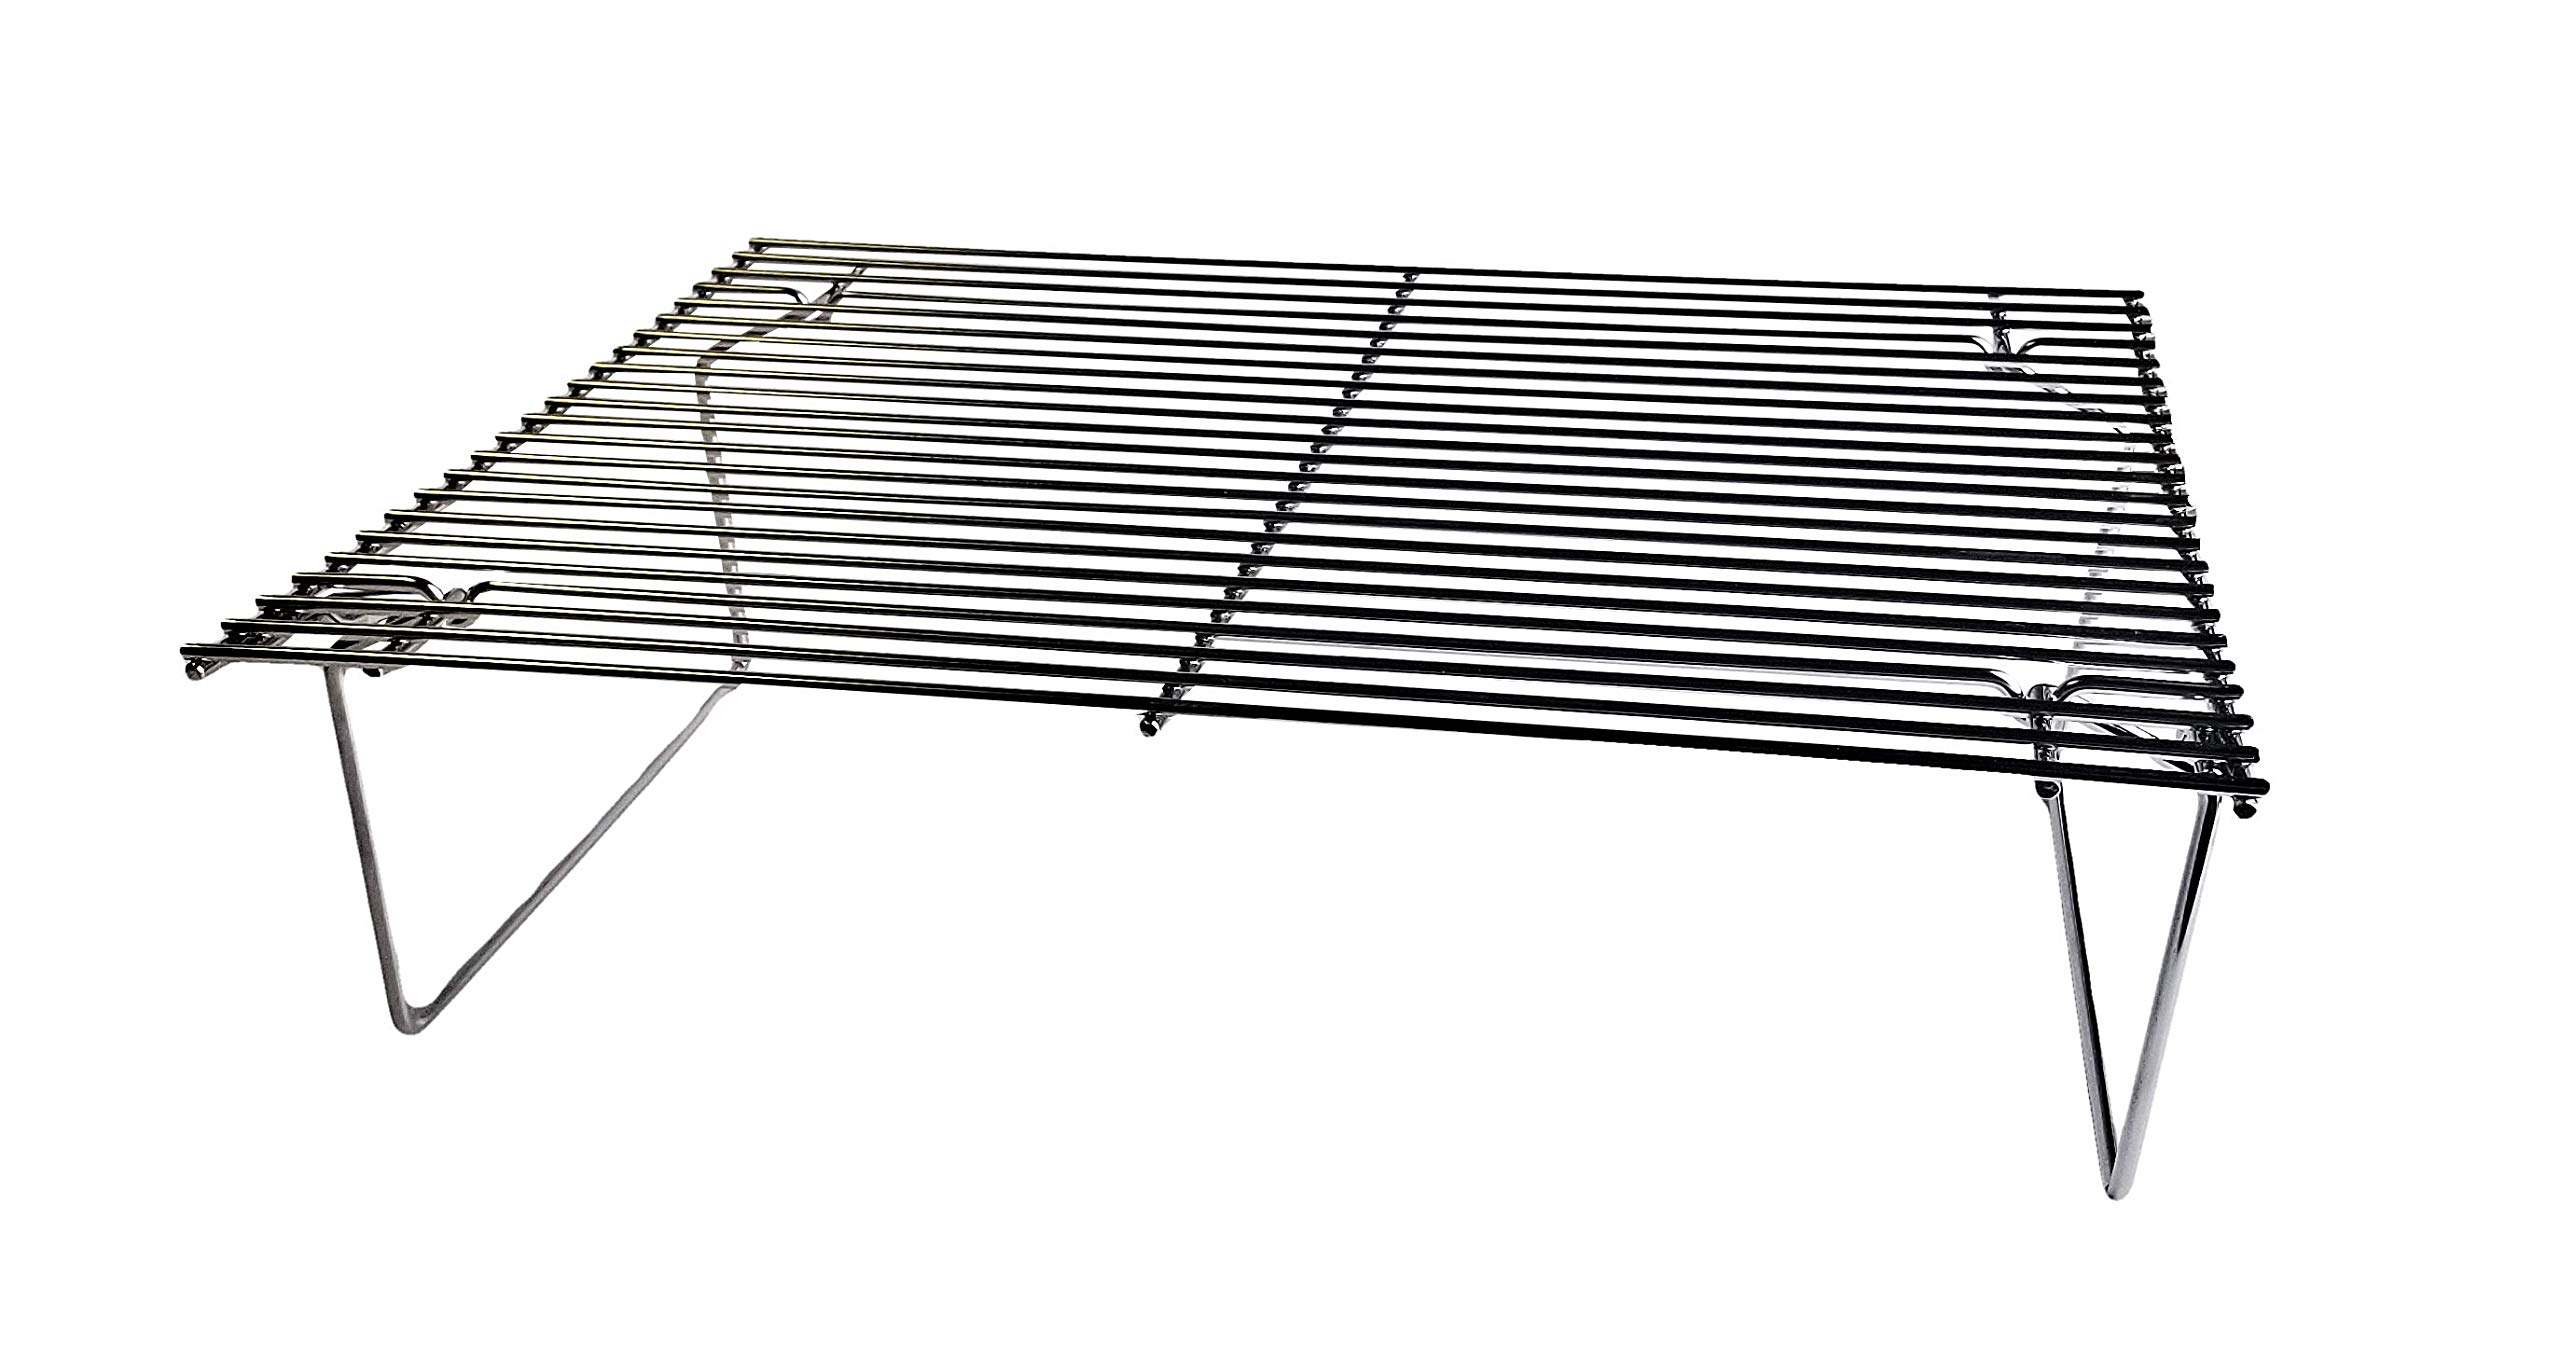 Green Mountain Grills GMG-6035 Collapsible Upper Rack for Daniel Boone Pellet Grill, Stainless Steel by Green Mountain Grills